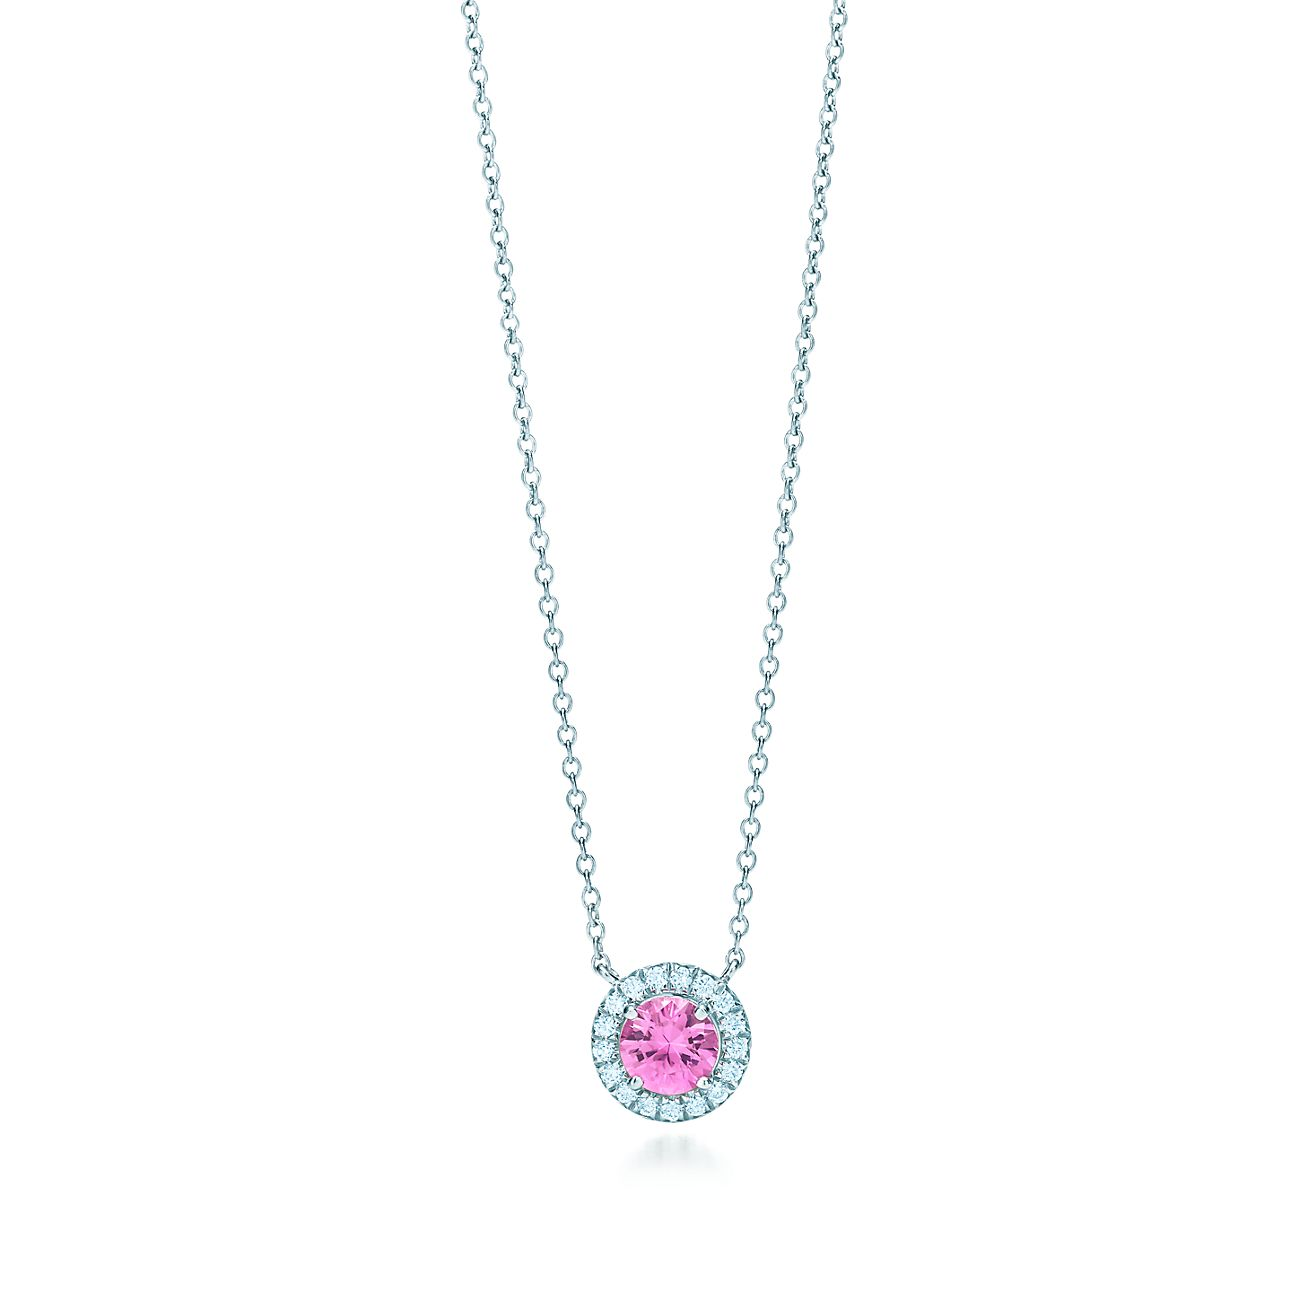 copy com at sapphire necklace neckl pink of products ring marina gold marinamura mura